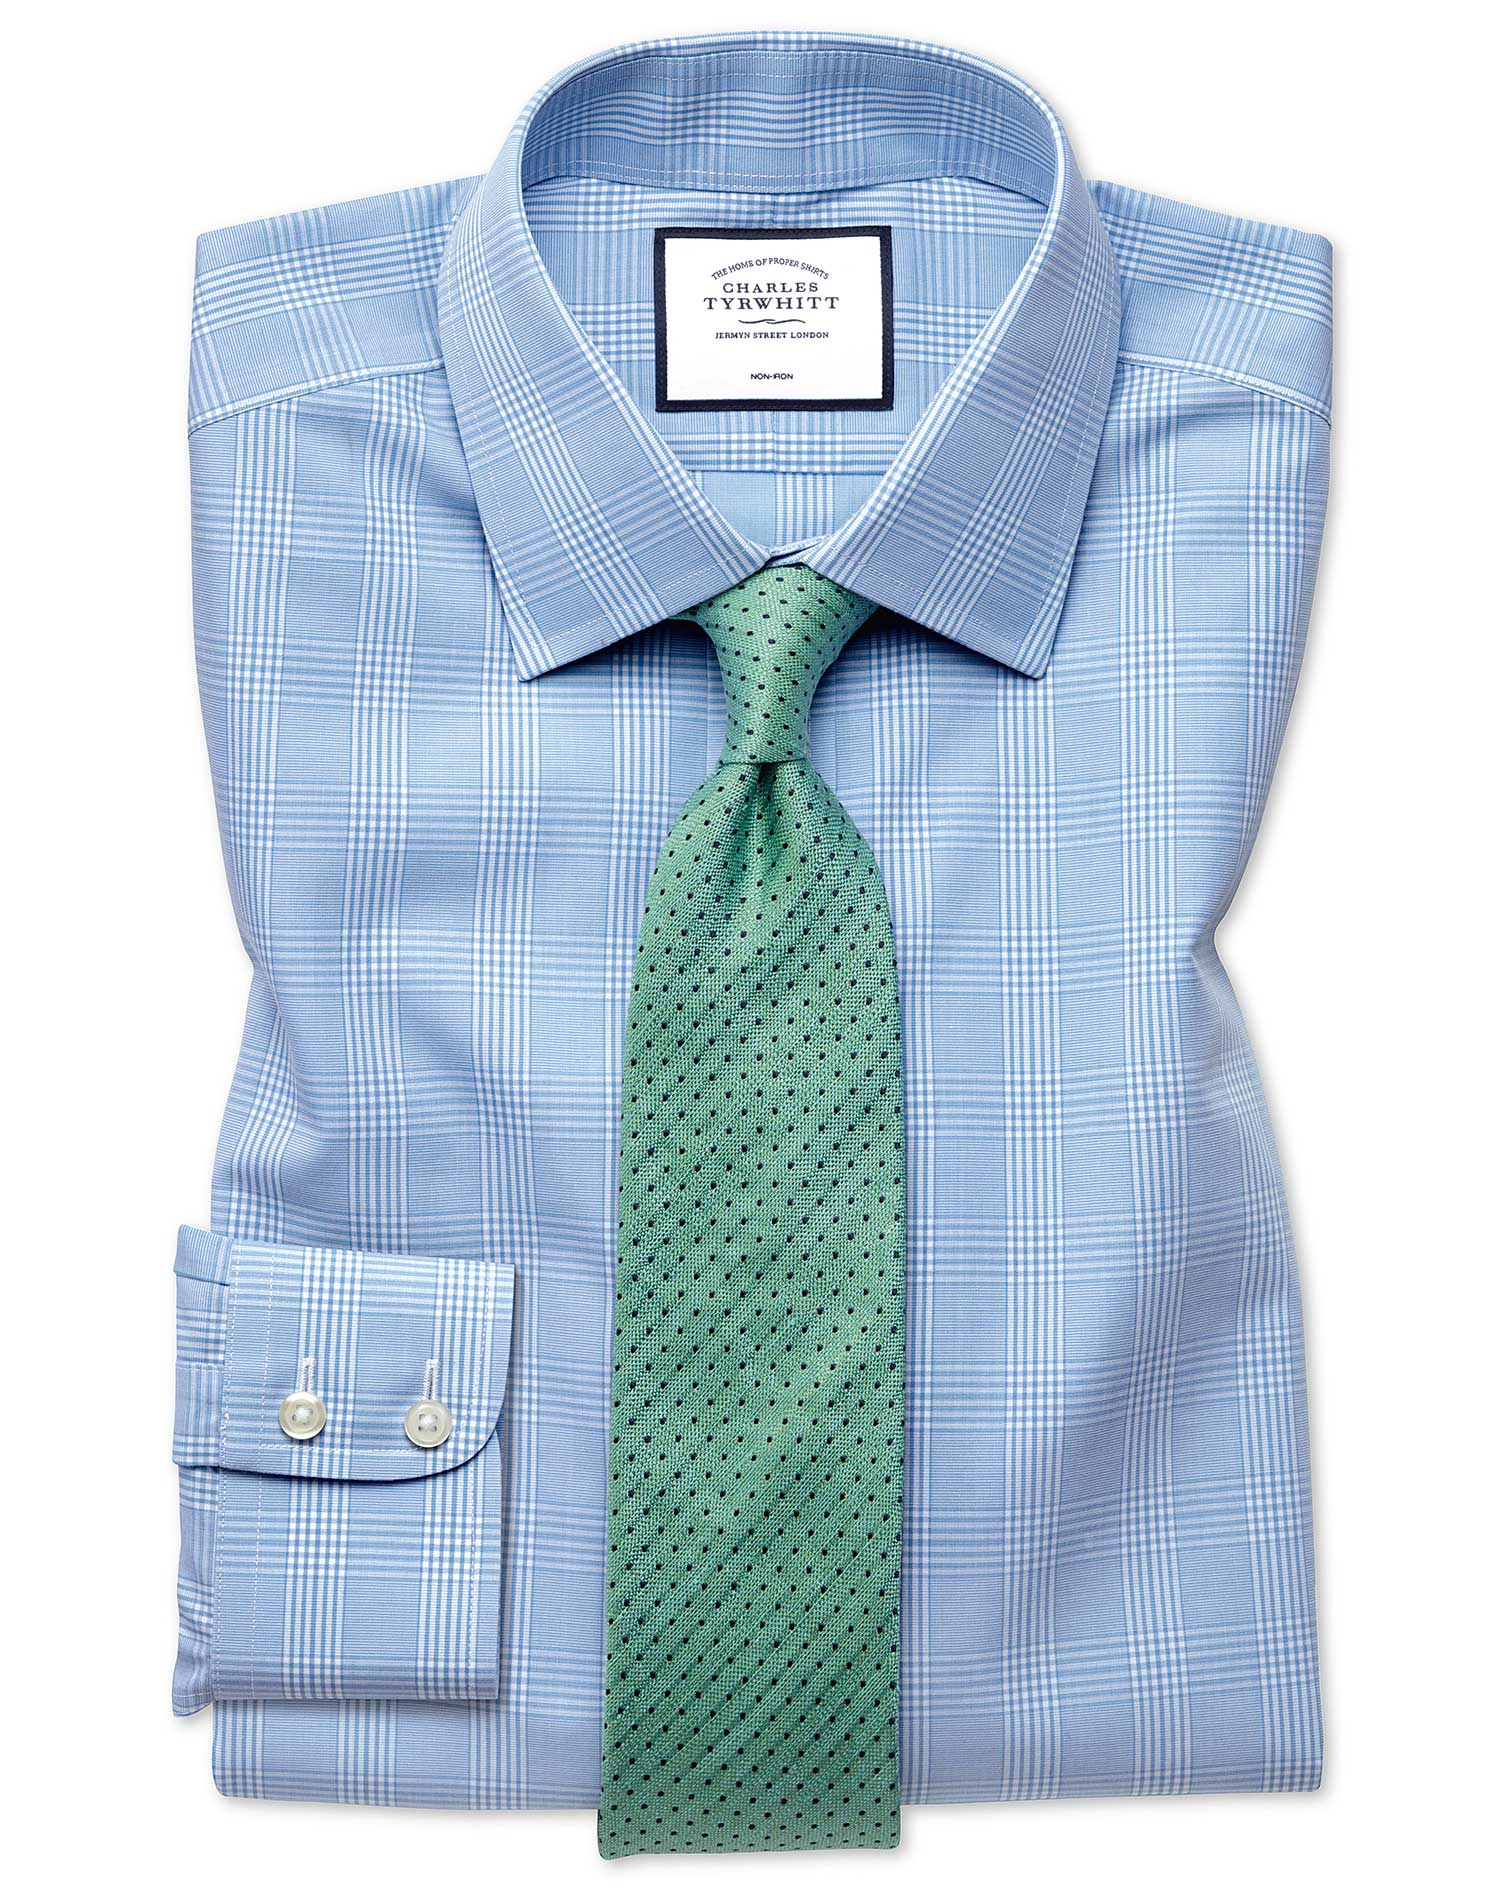 Cotton Slim Fit Non-Iron Prince Of Wales Sky Blue Shirt